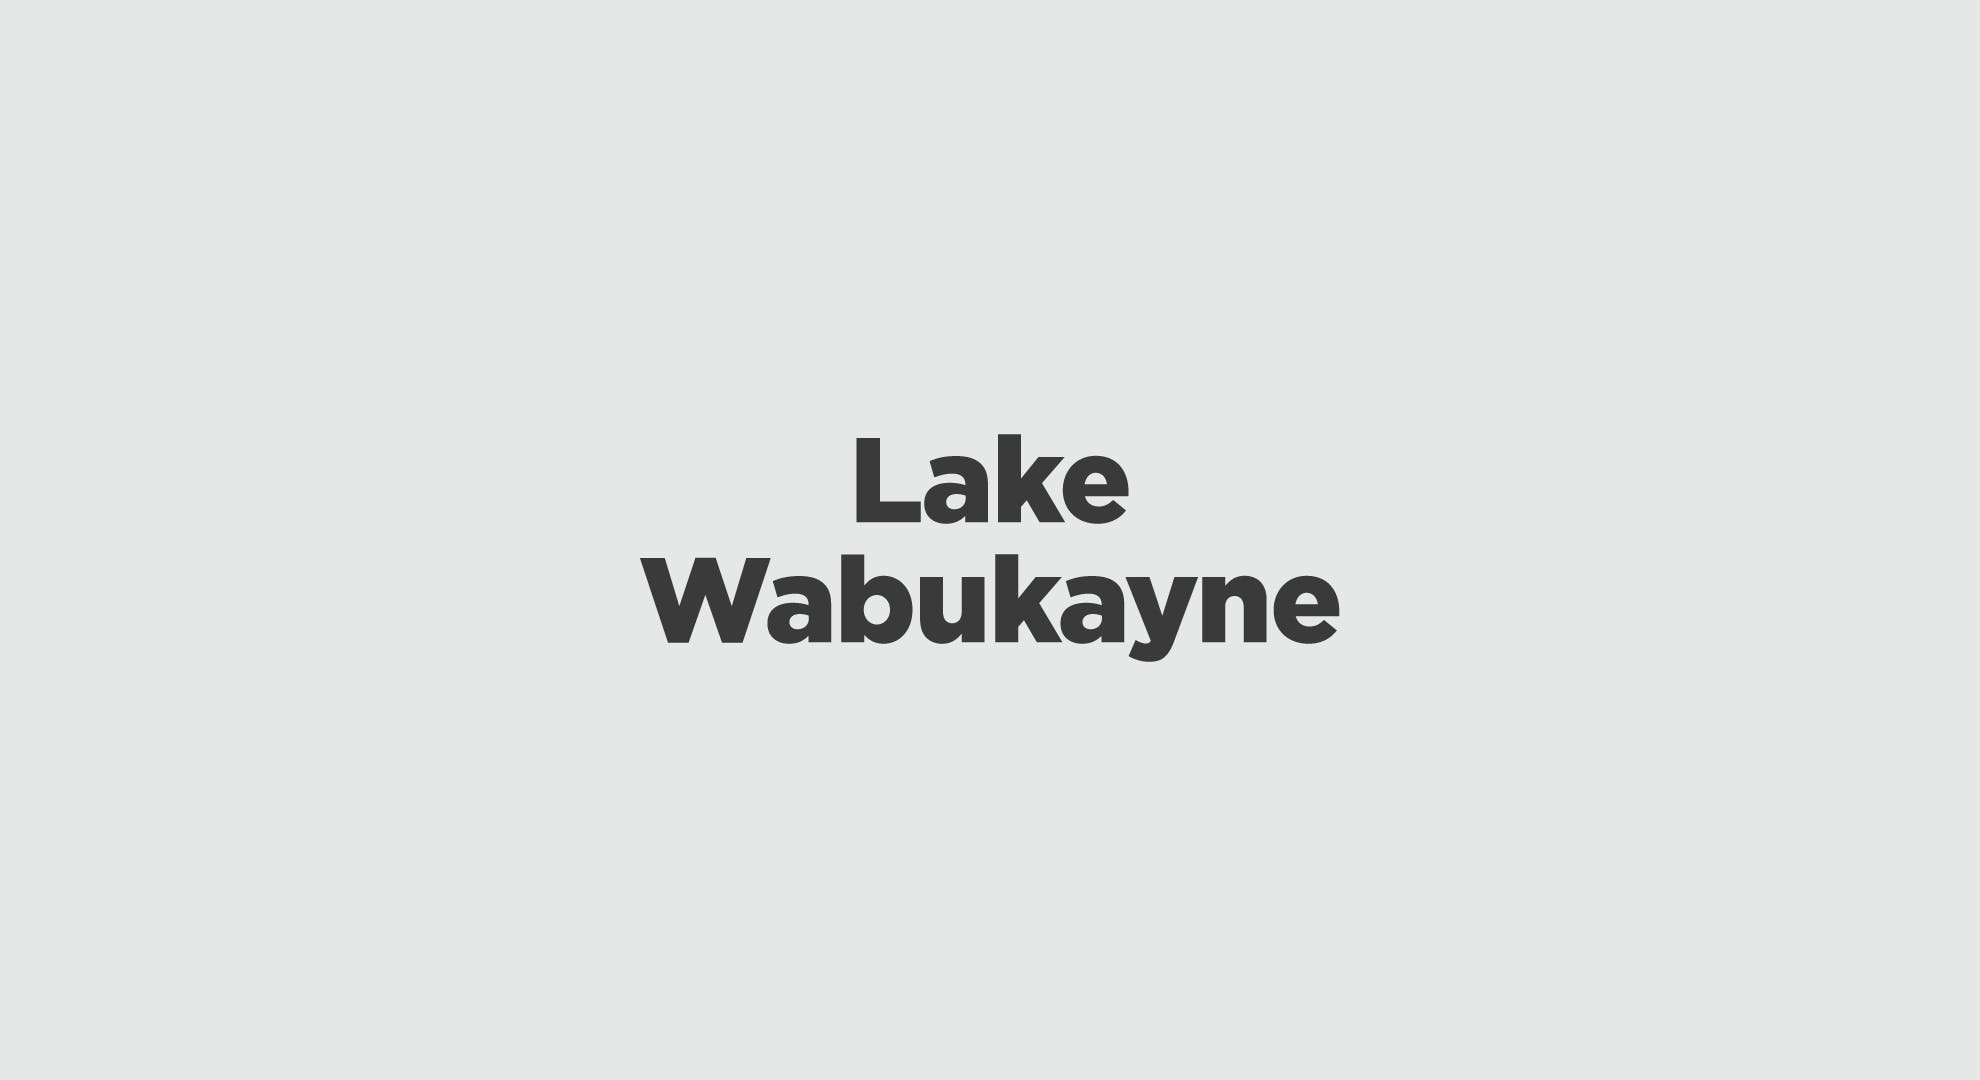 Lake Wabukayne Graphic